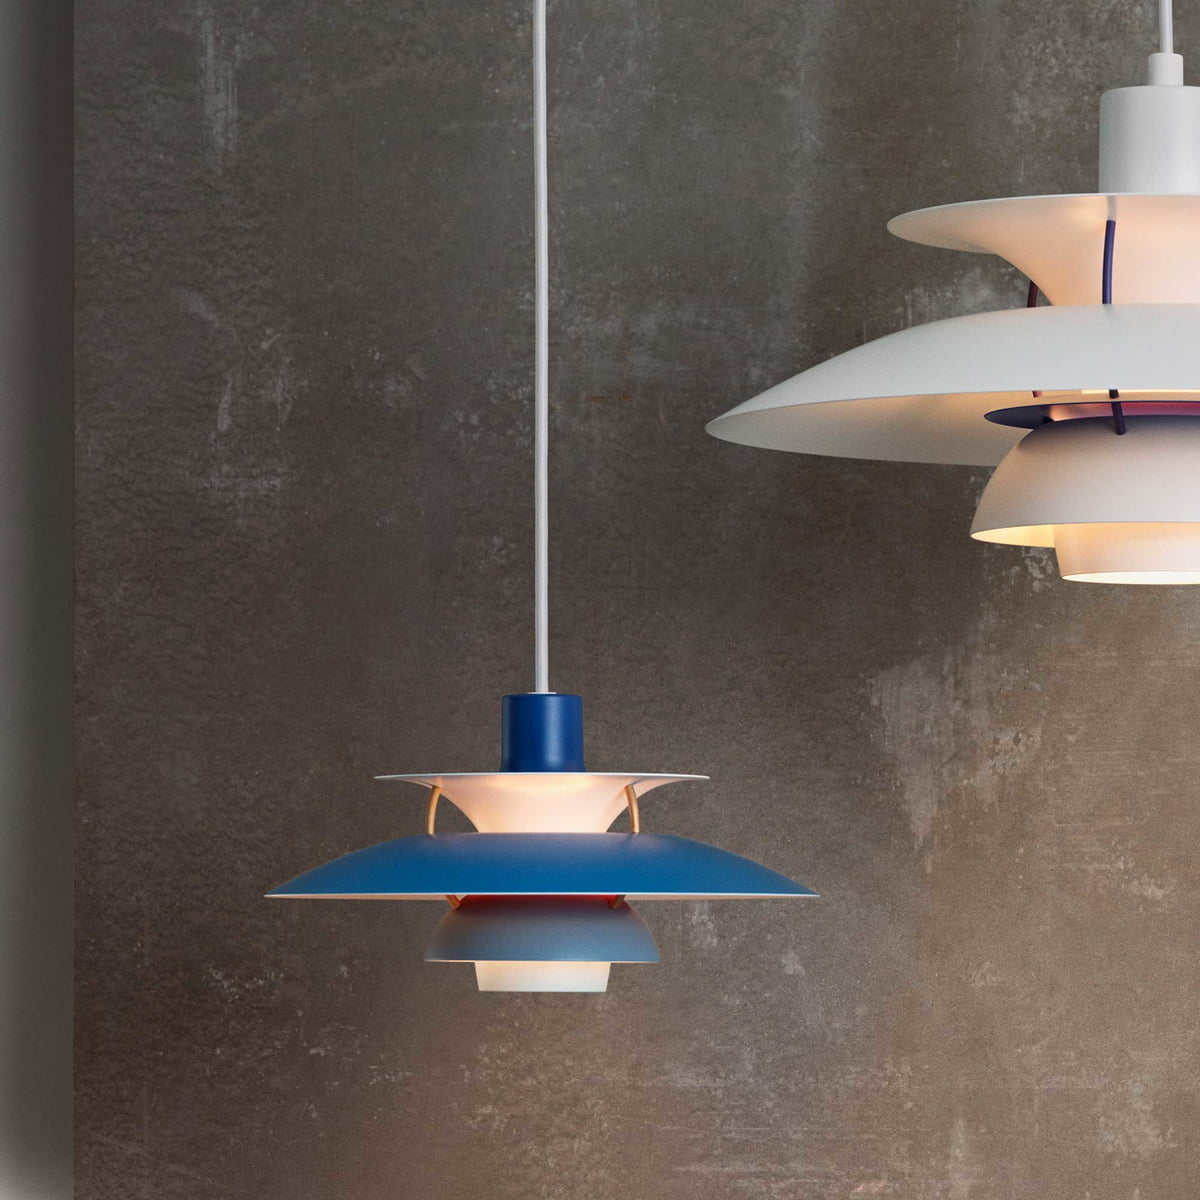 PH Mini Pendant Lamp By Louis Poulsen - 5 pendant light fixture